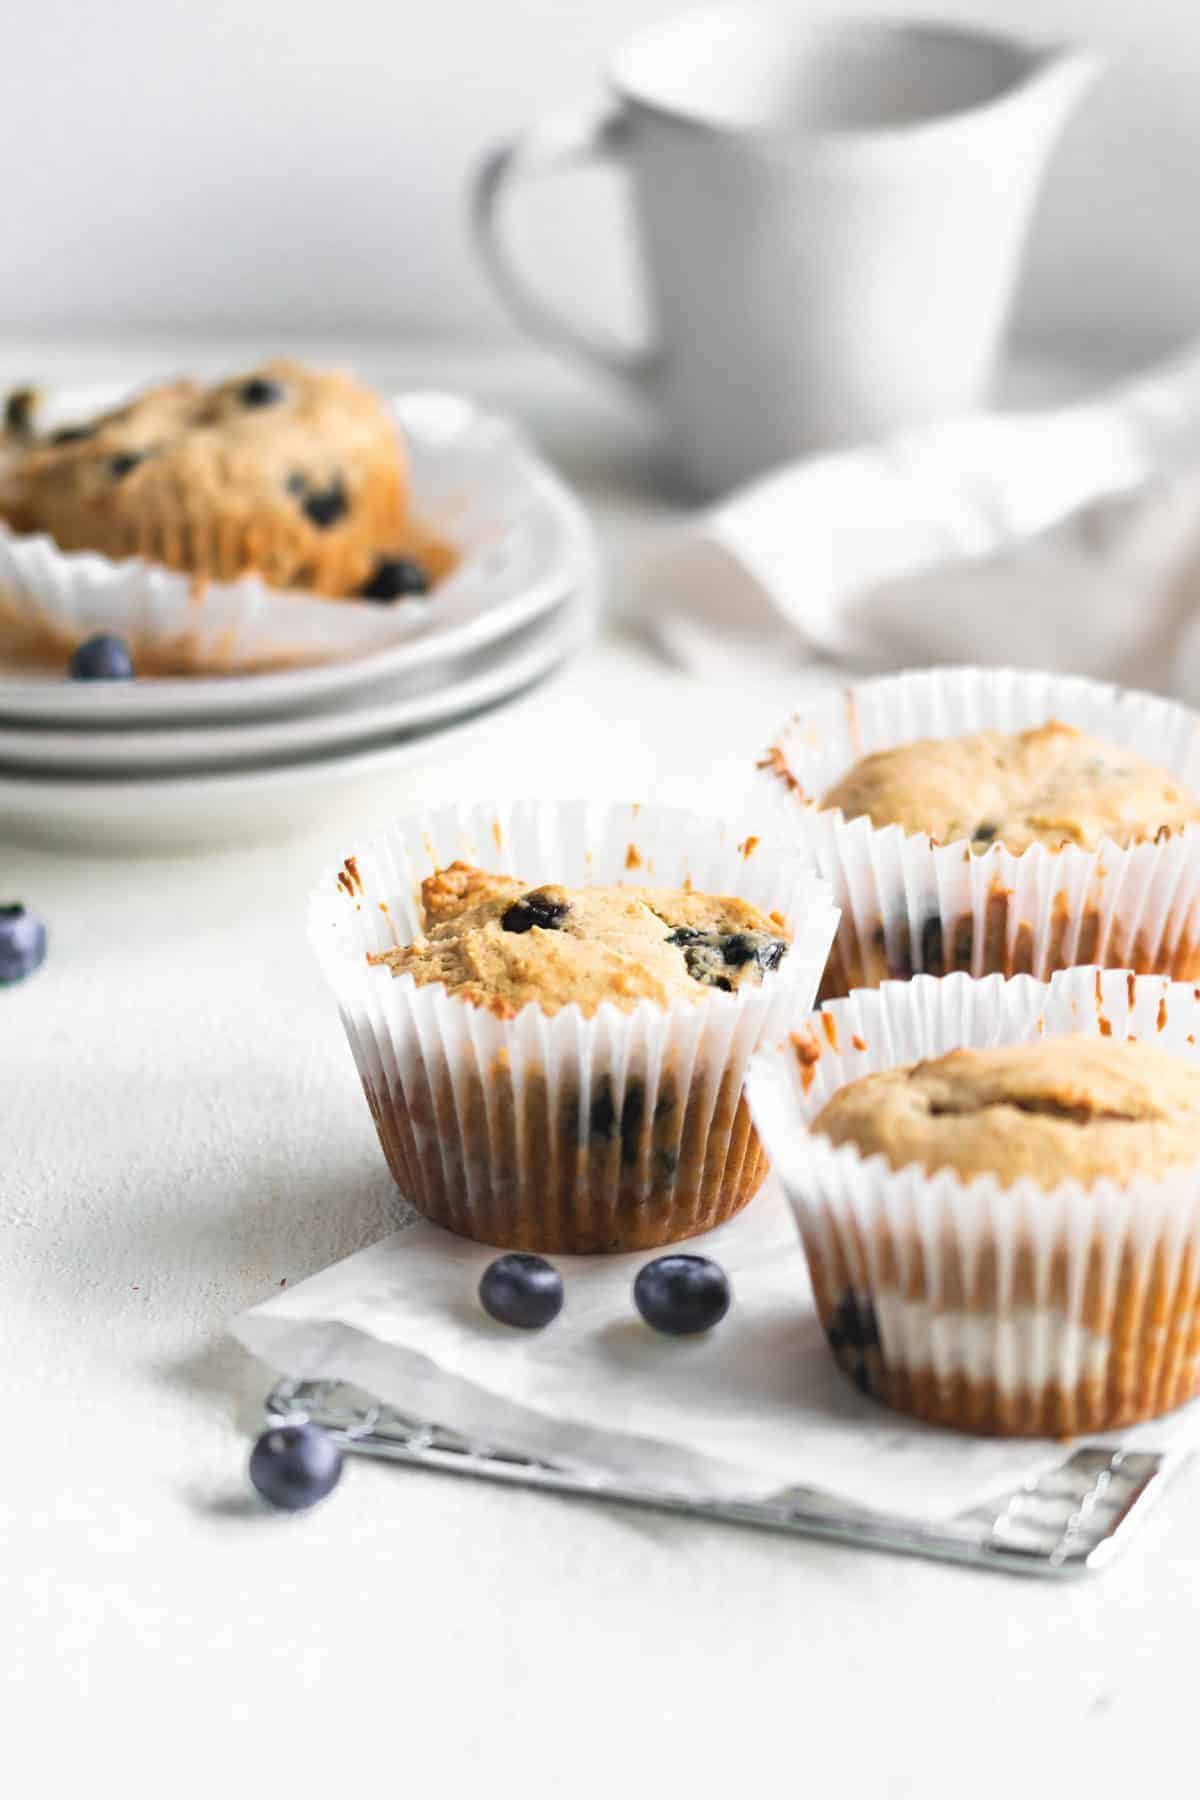 blueberry muffins on paper